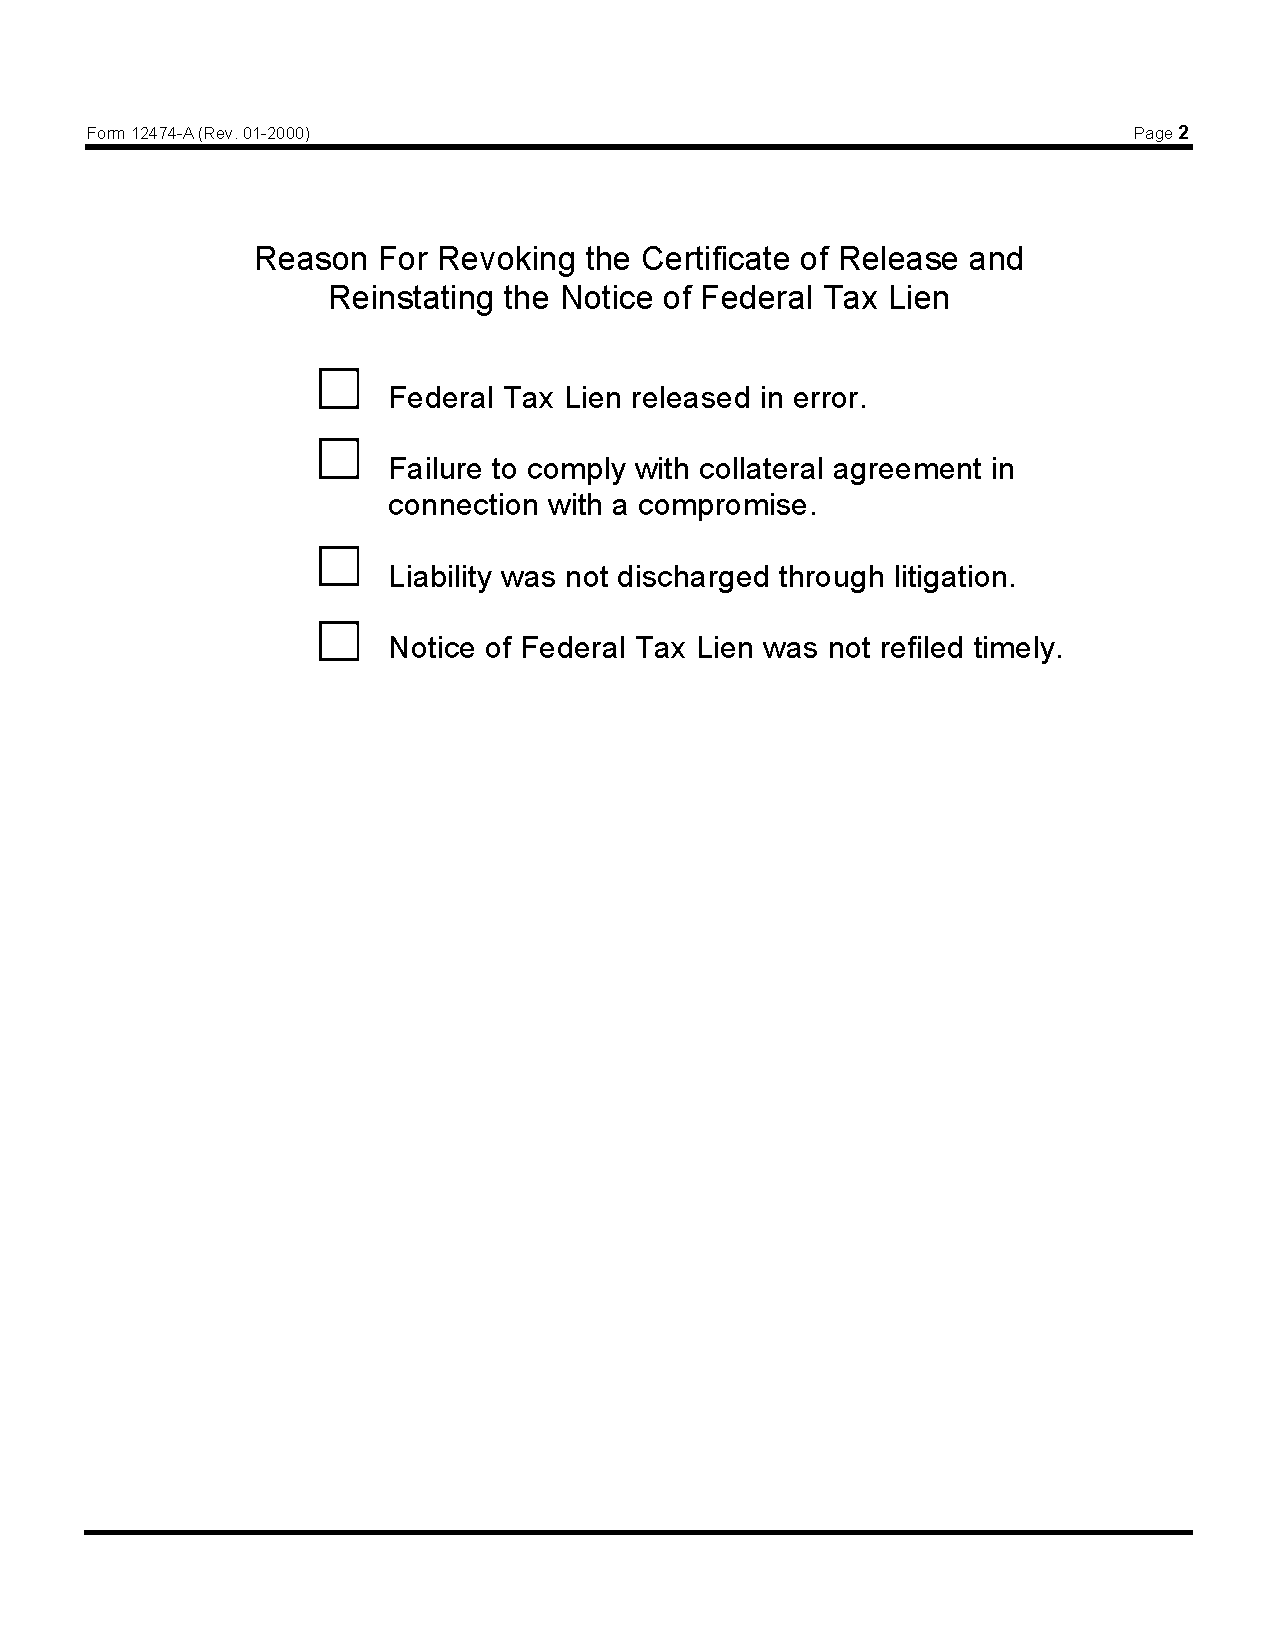 Form 12474 A Revocation Of Certificate Of Release Of Federal Tax Lien